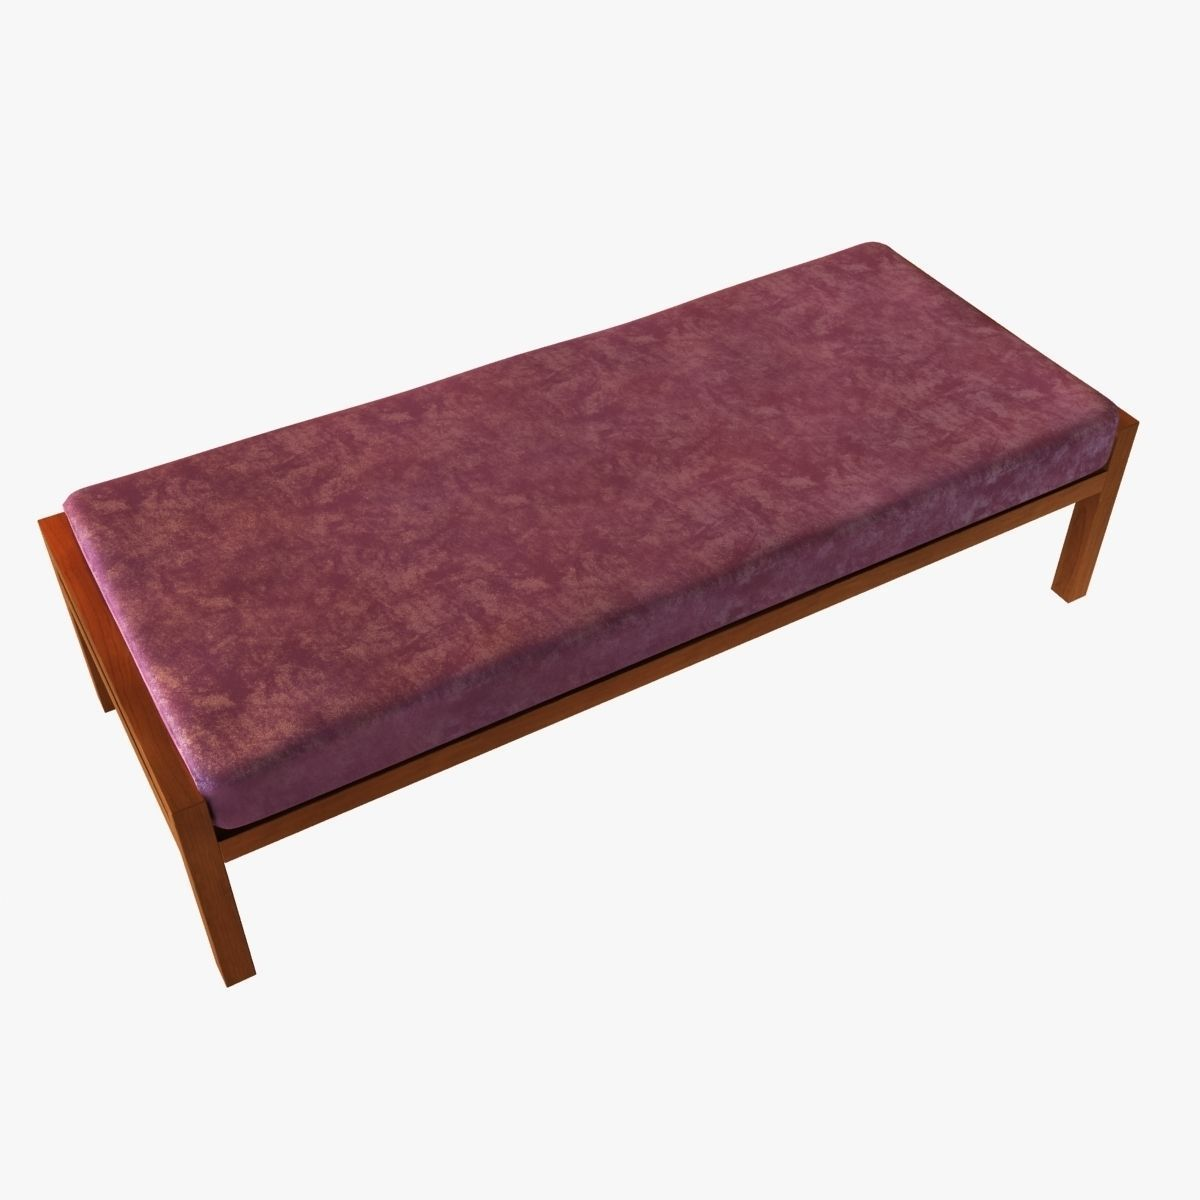 Wood Bench With Cushion 3d Model Max Obj Fbx